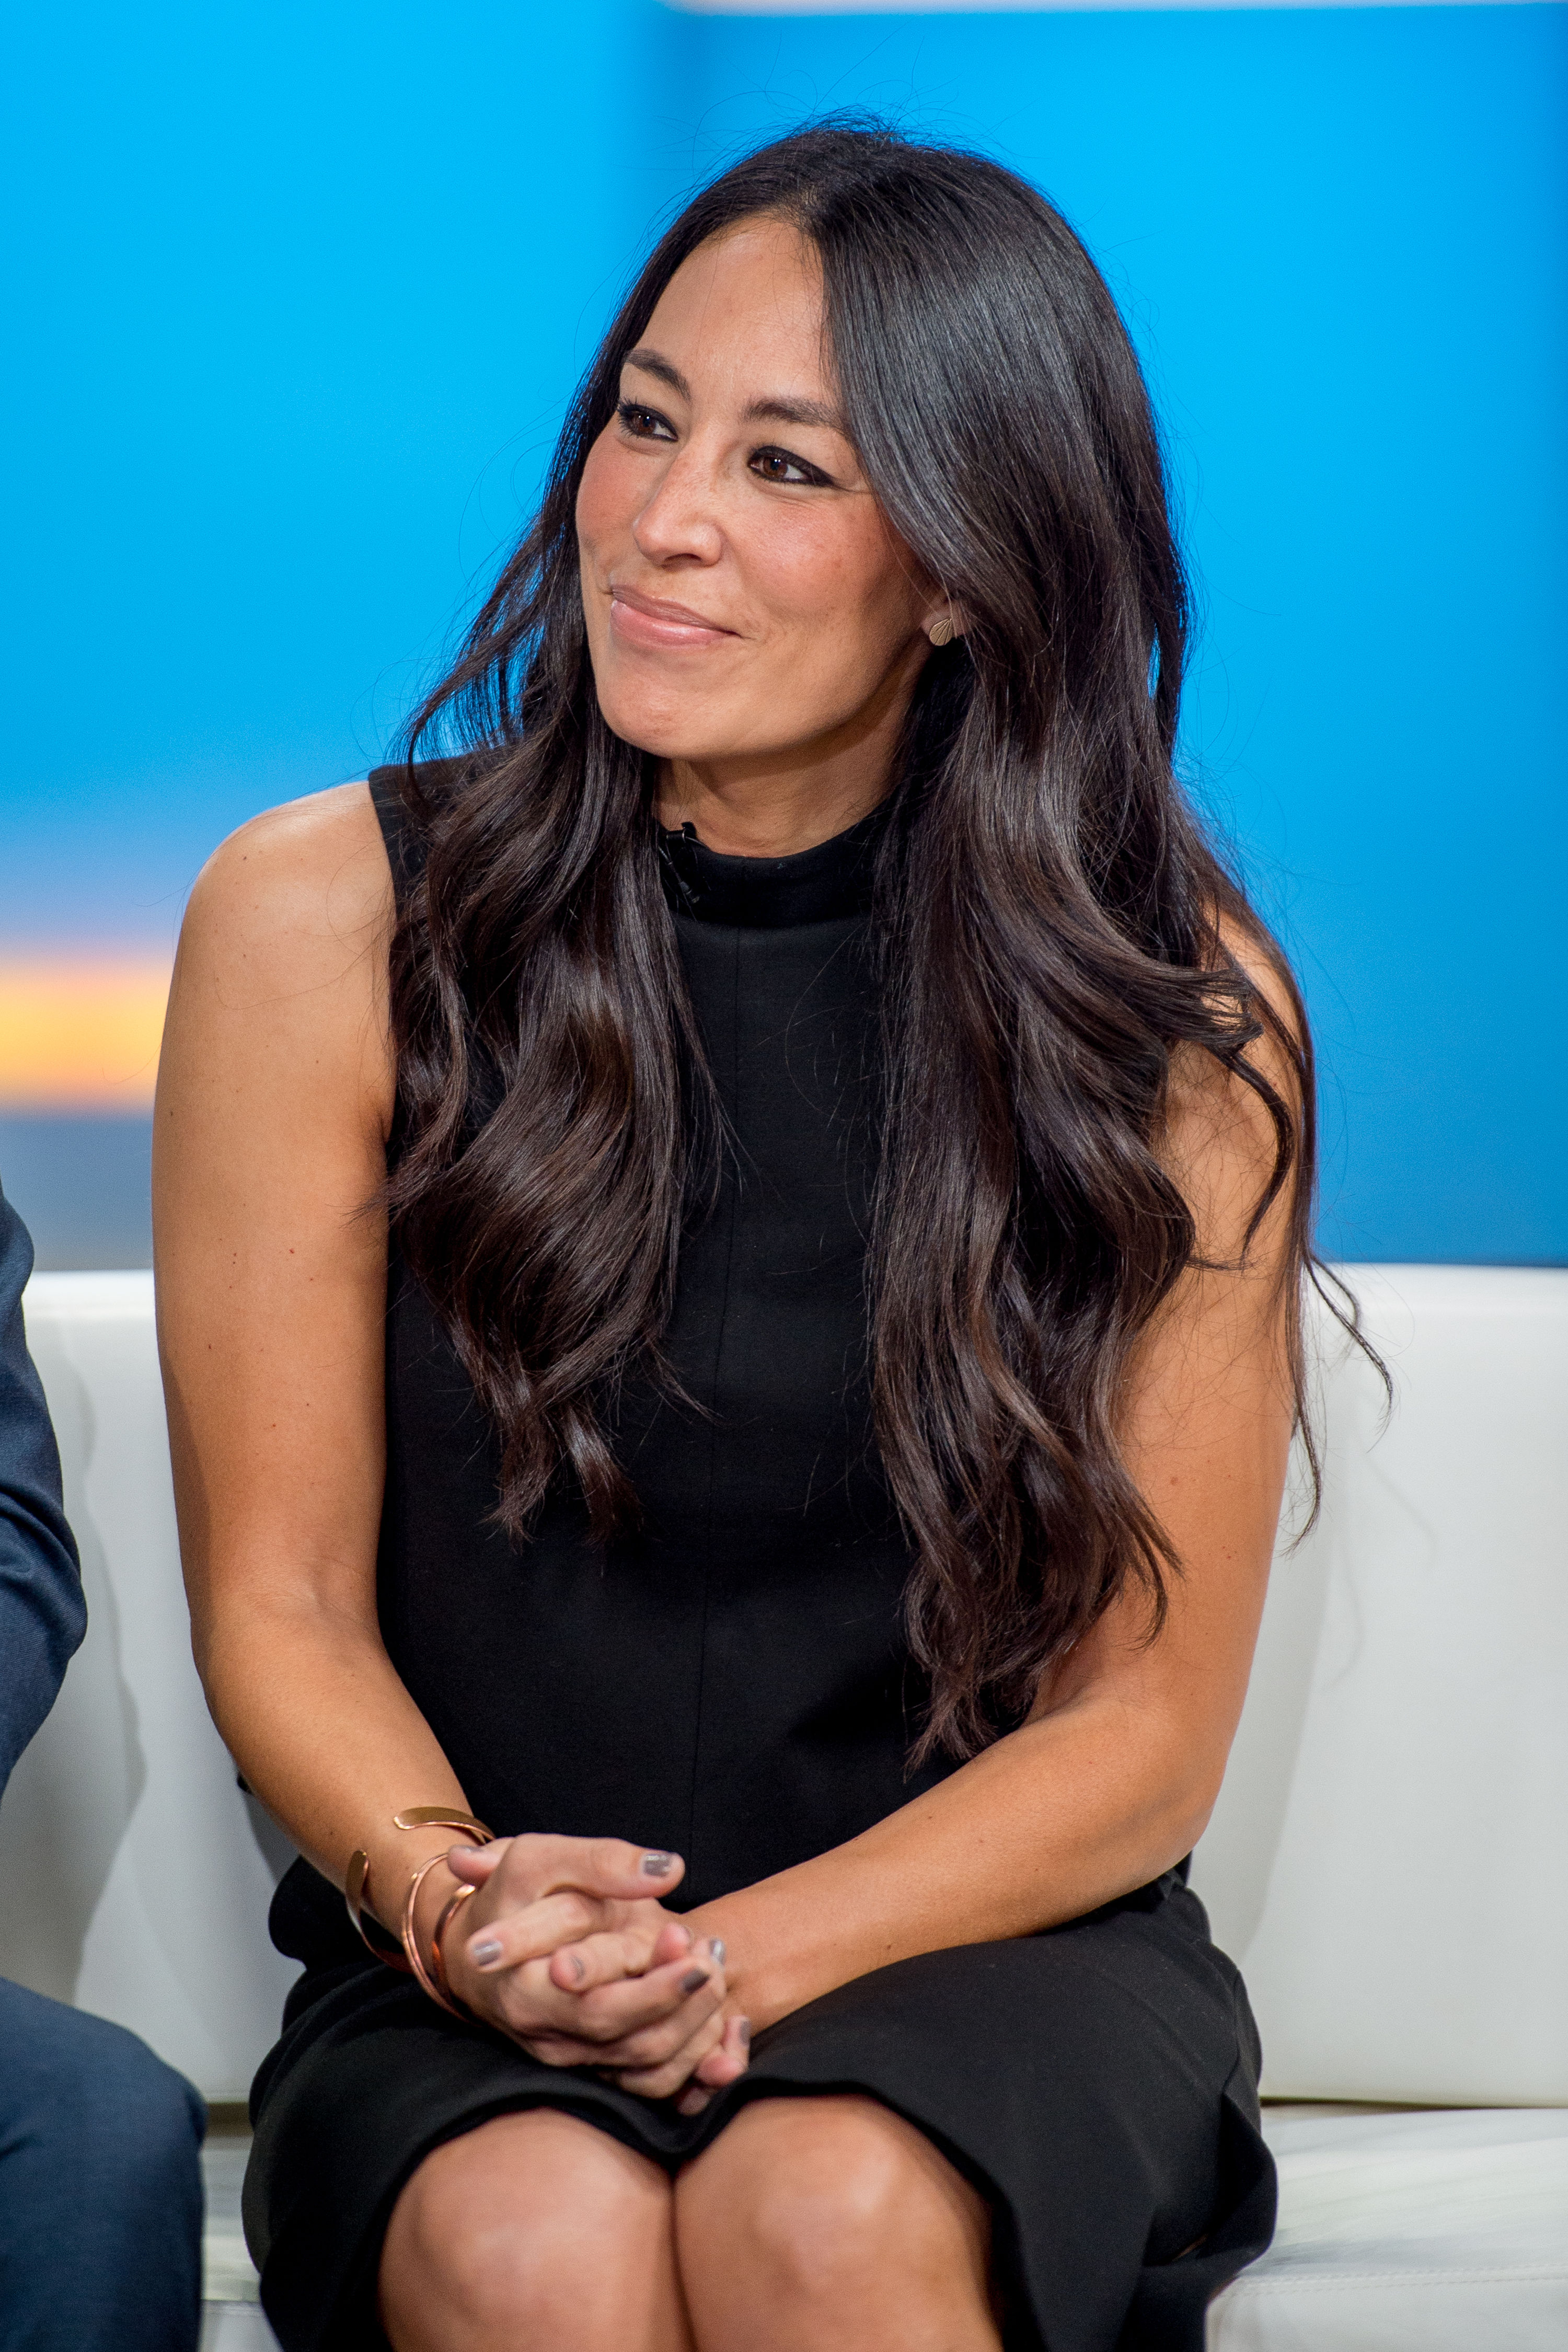 Joanna Gaines Gets Real About the Pressures of Social Media